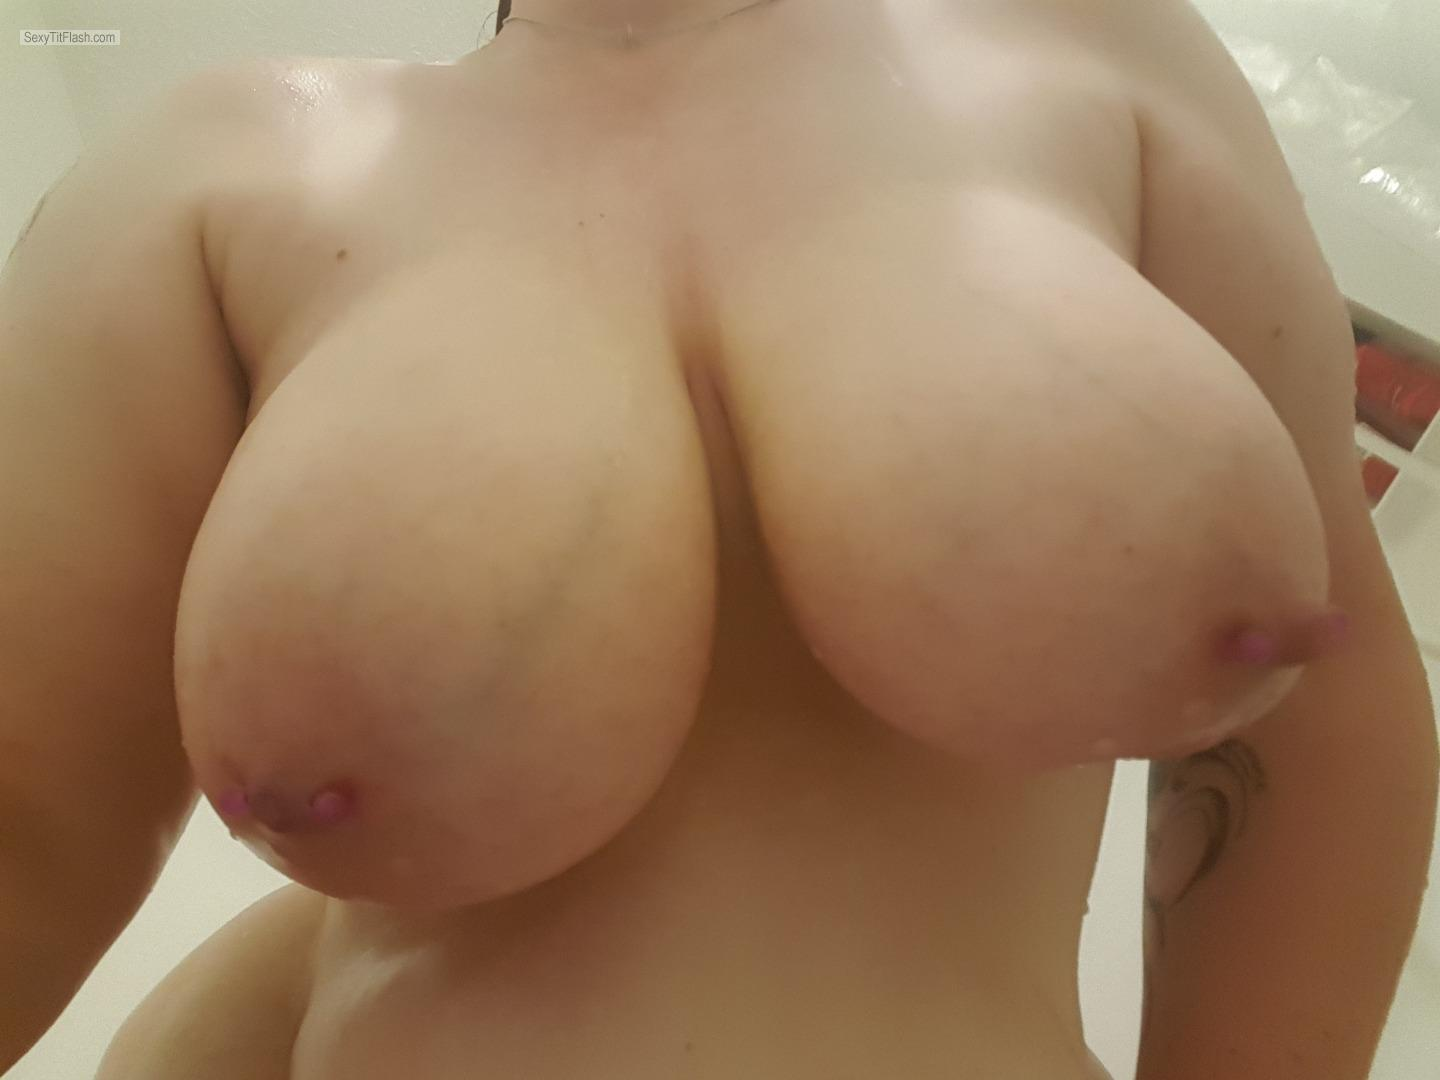 Tit Flash: My Very Big Tits (Selfie) - Bigtittymilf from United KingdomPierced Nipples